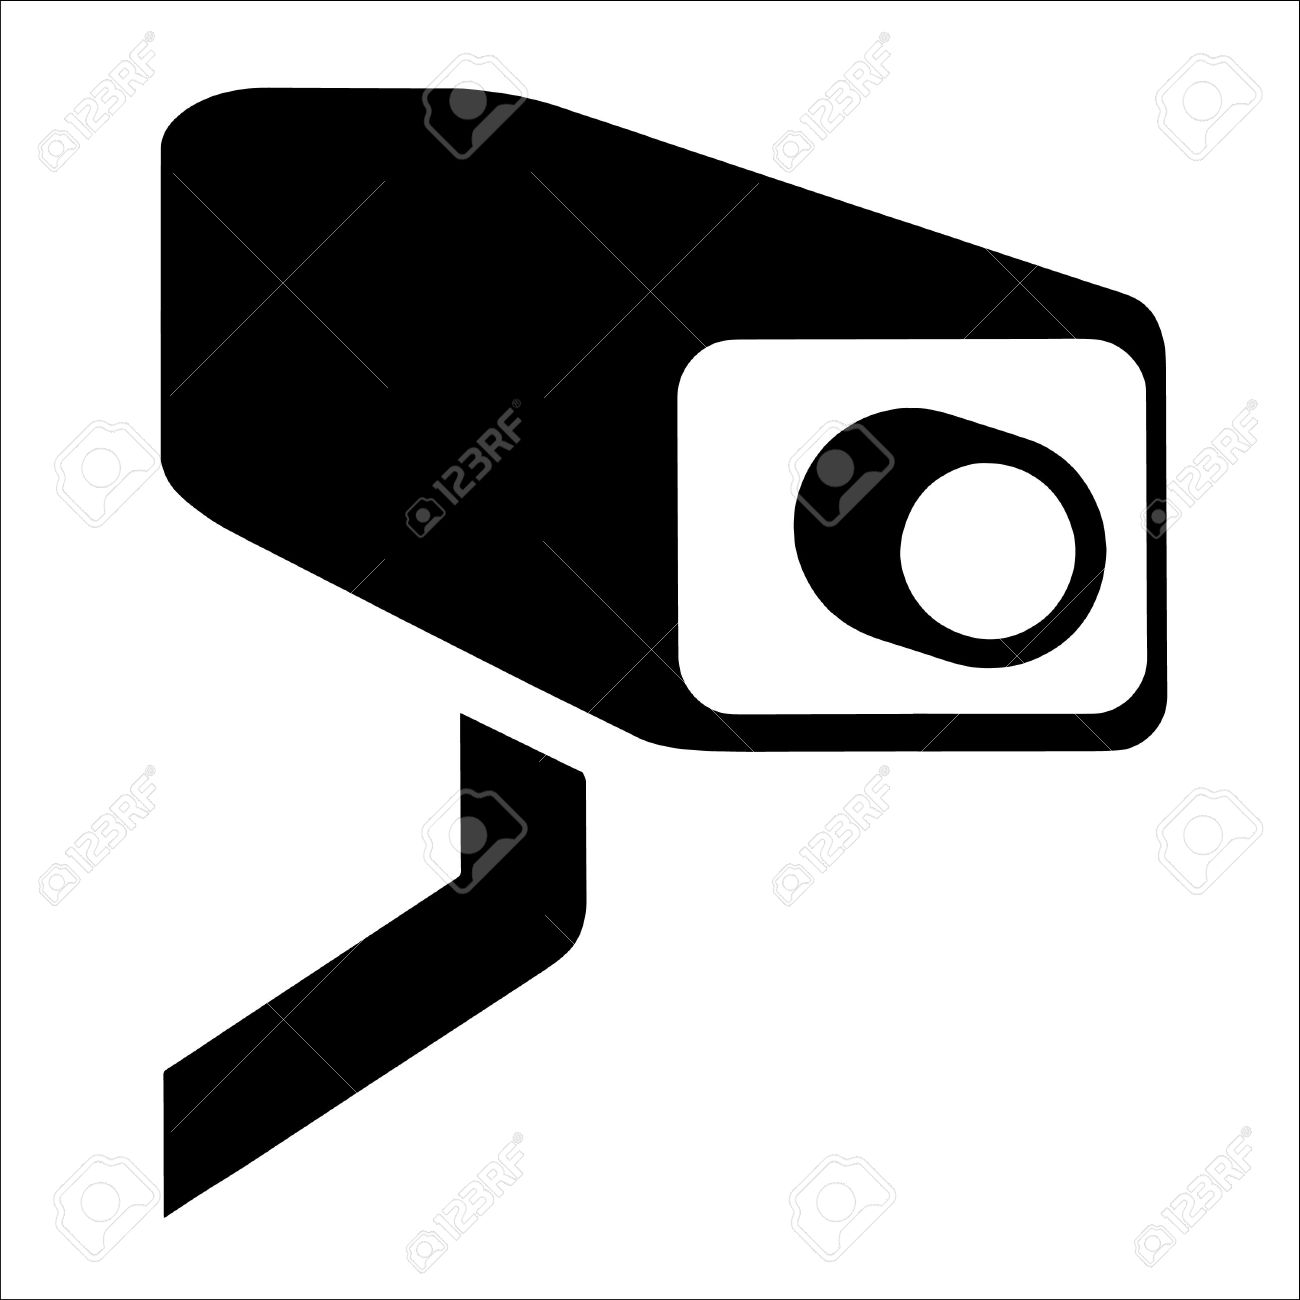 Security Camera Clipart - Synkee